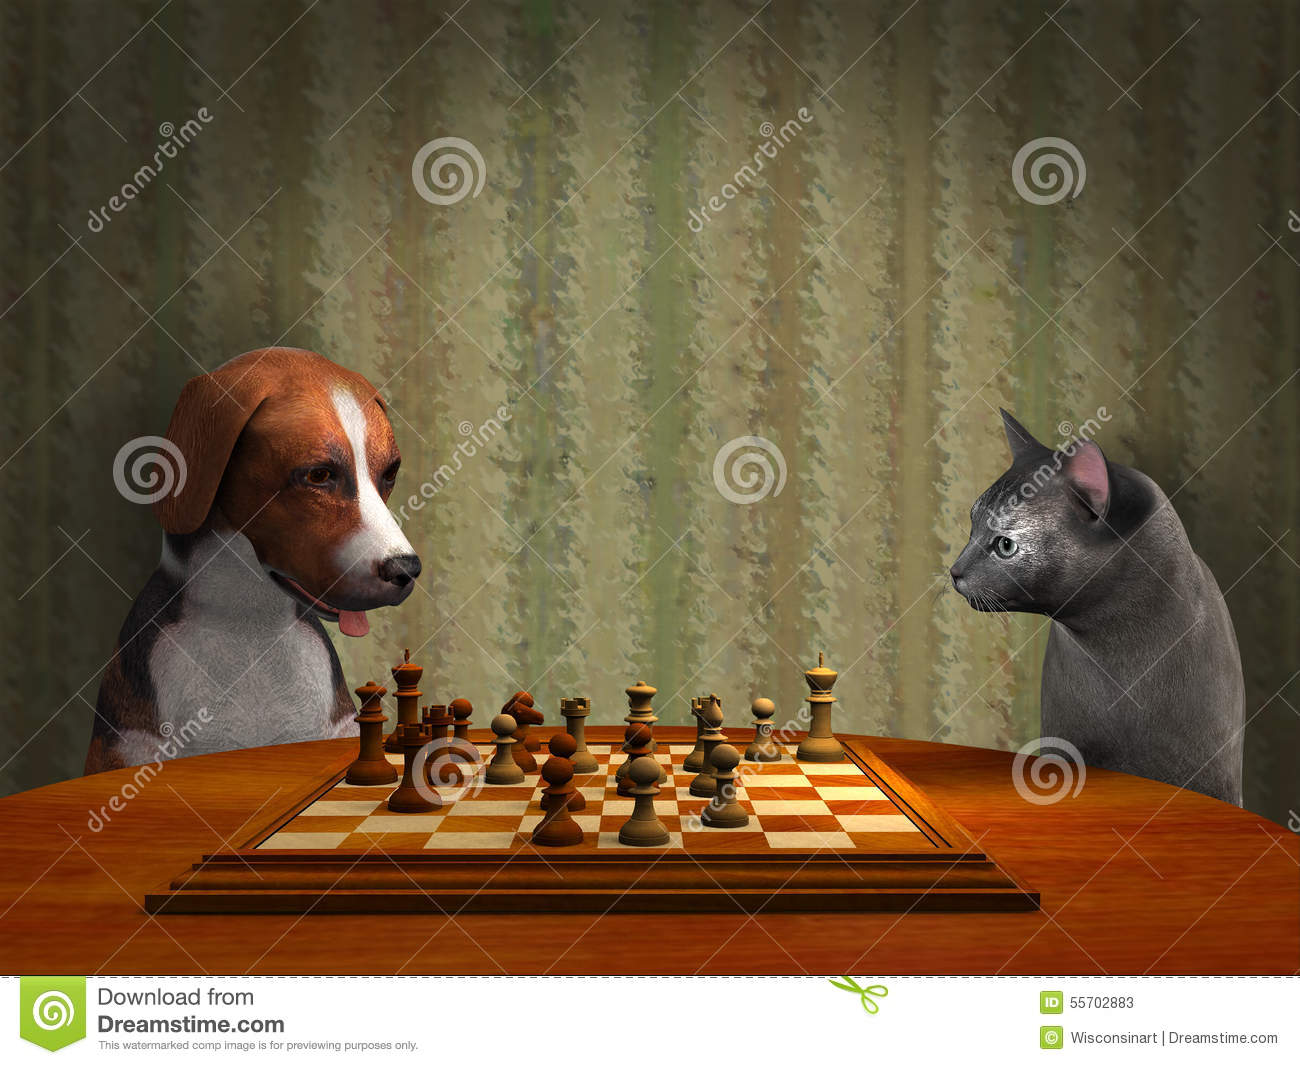 games for cats and dogs to play together